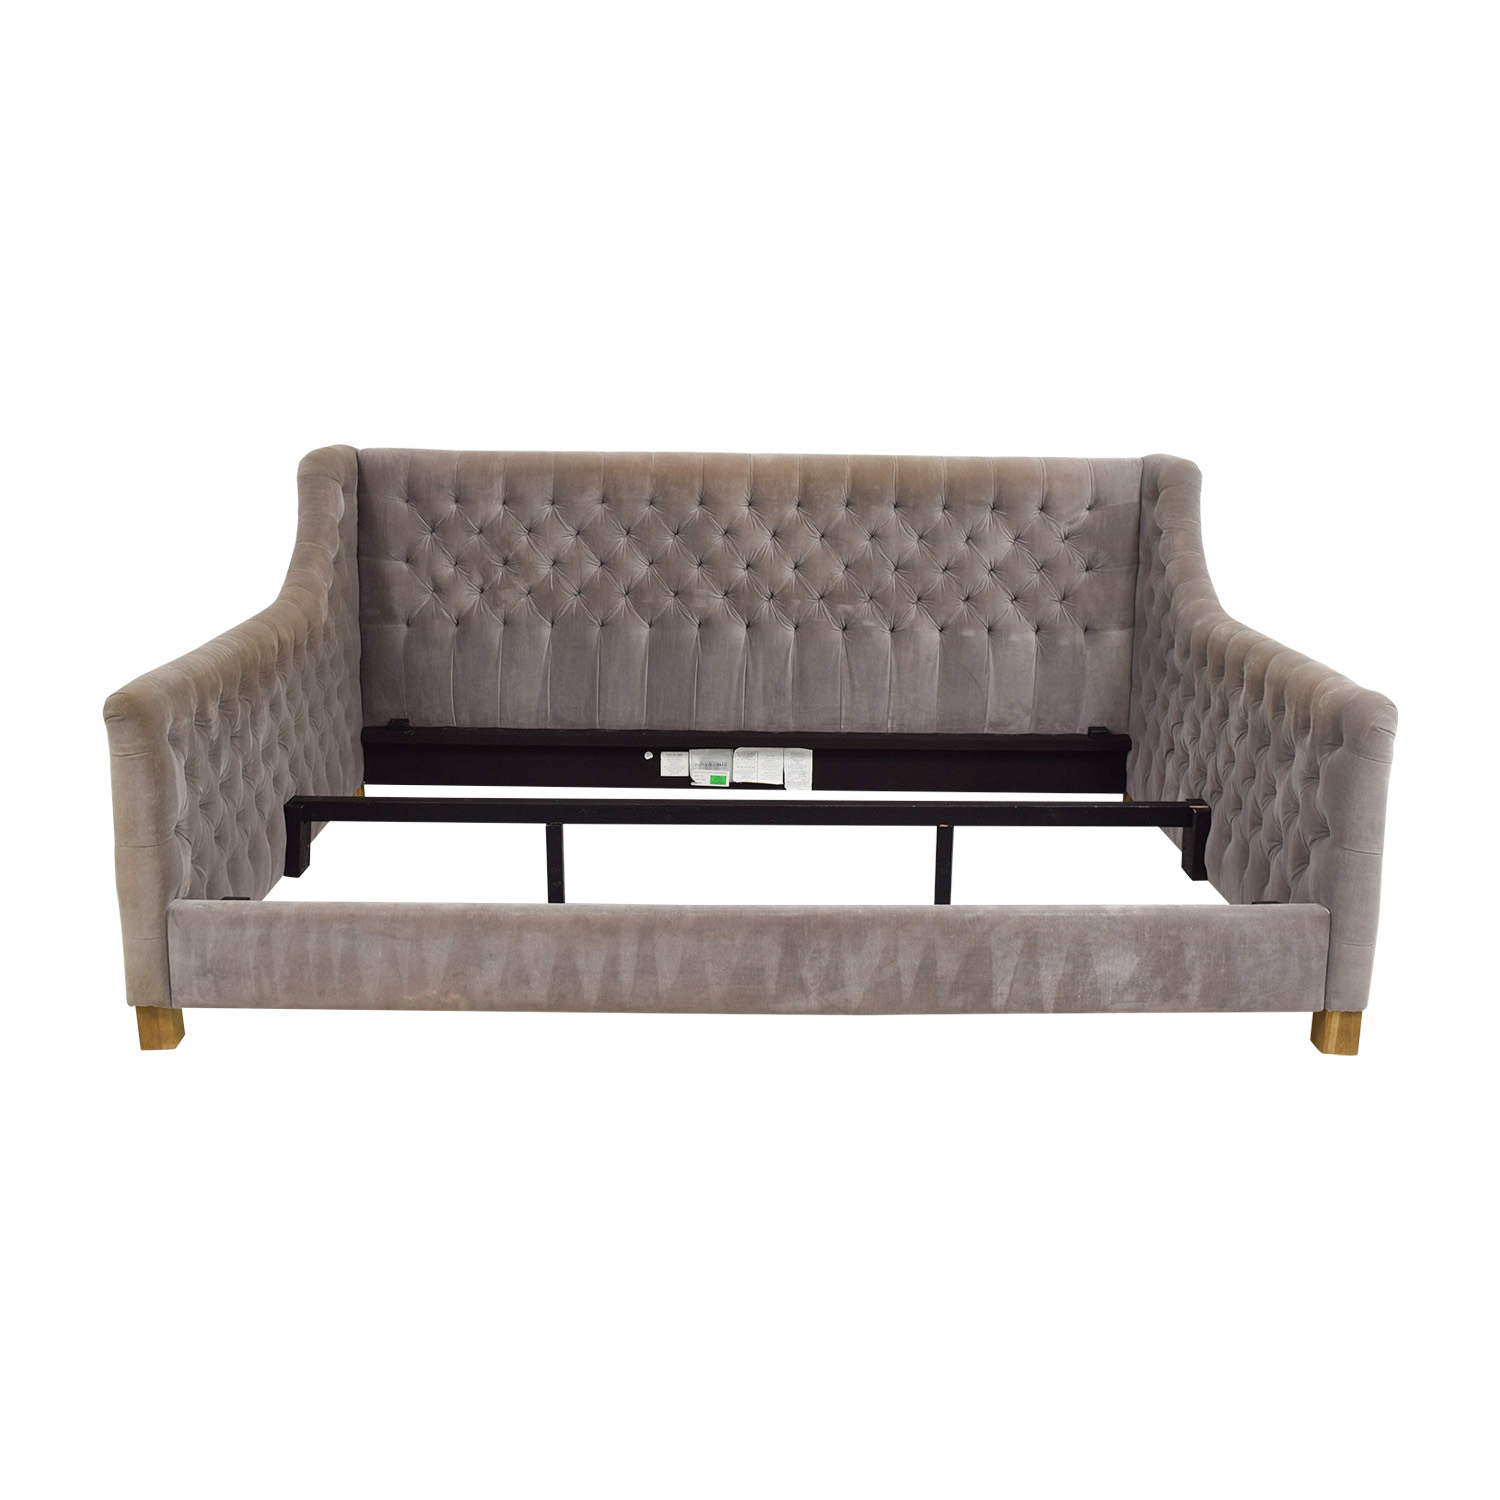 buy Restoration Hardware Devyn Fog Tufted Full Daybed Restoration Hardware Beds